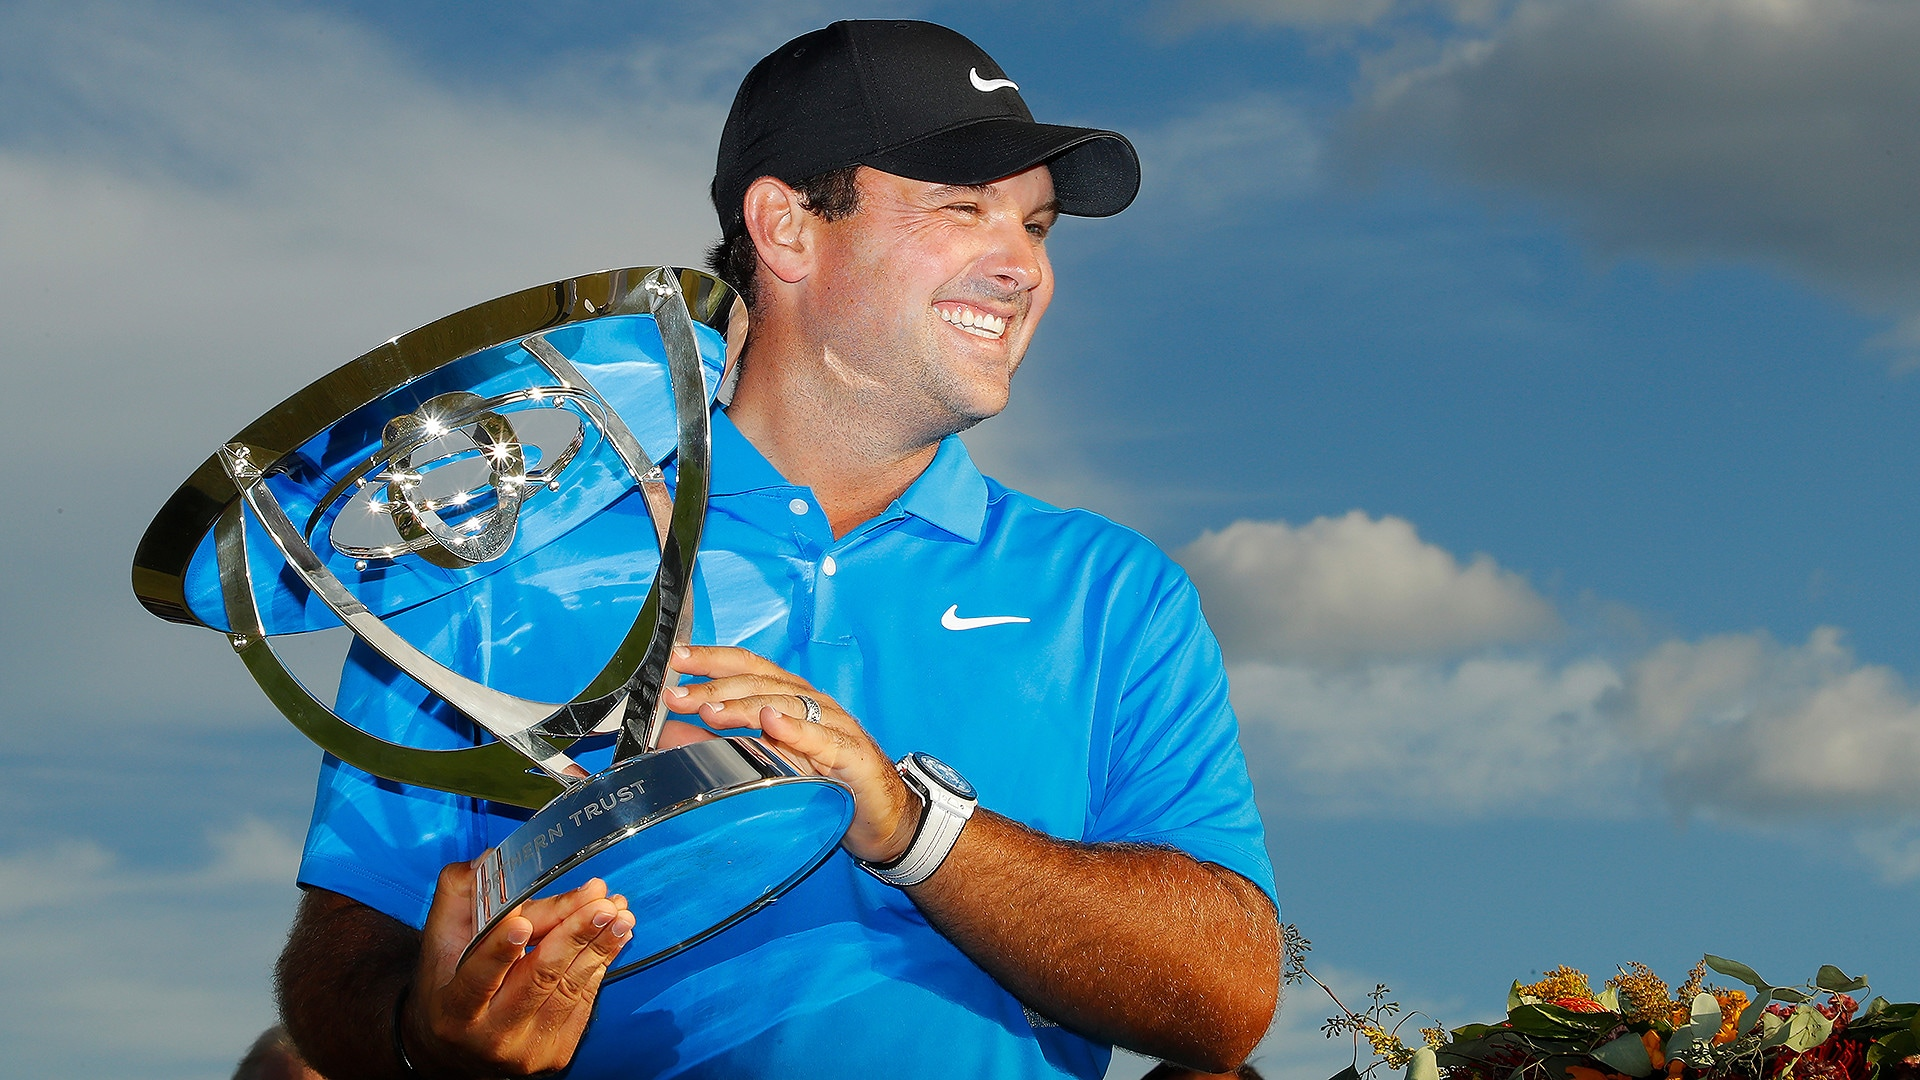 The Northern Trust: Patrick Reed